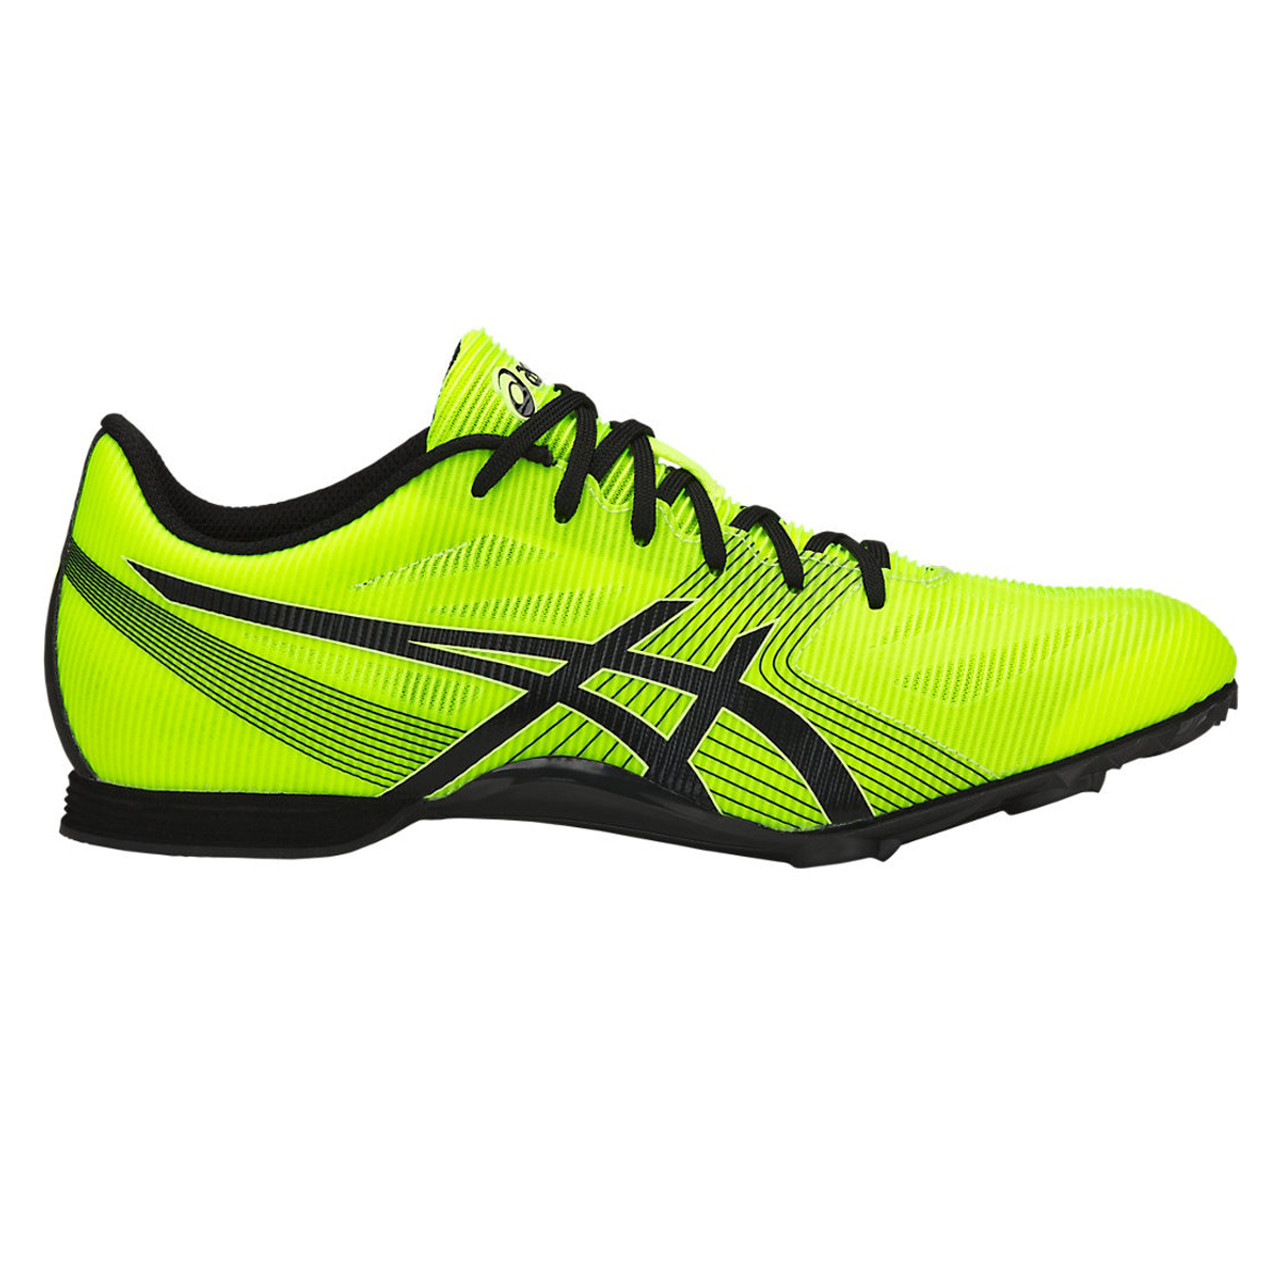 Asics Hyper MD 6 Men's Track and Field Shoes Yellow, Black